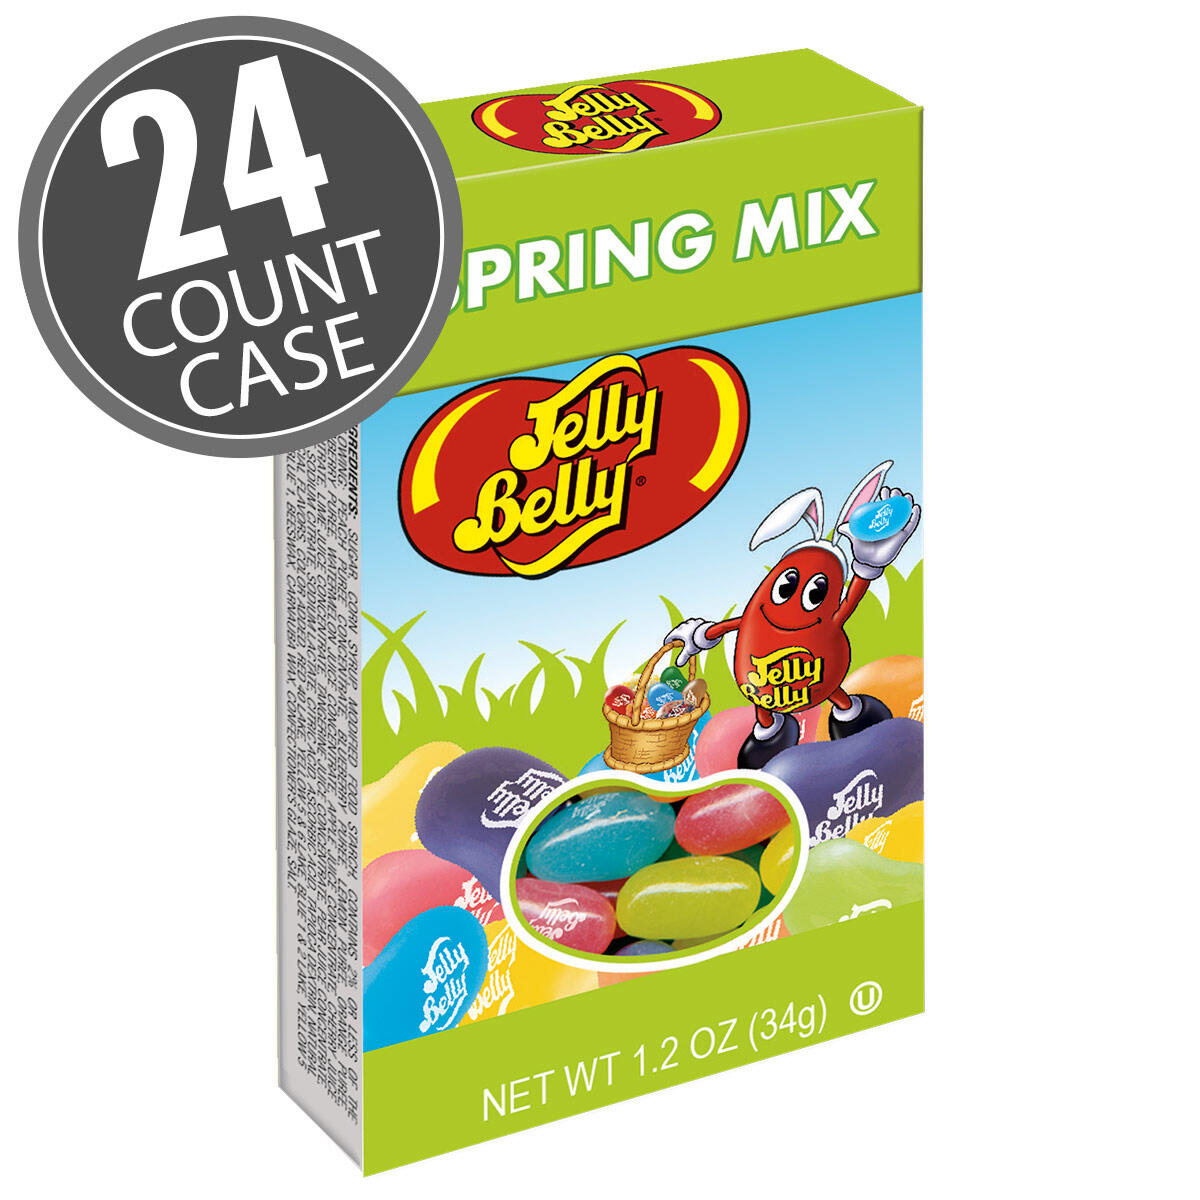 Jelly Belly Spring Mix - 1.2 oz Boxes - 24-Count Case